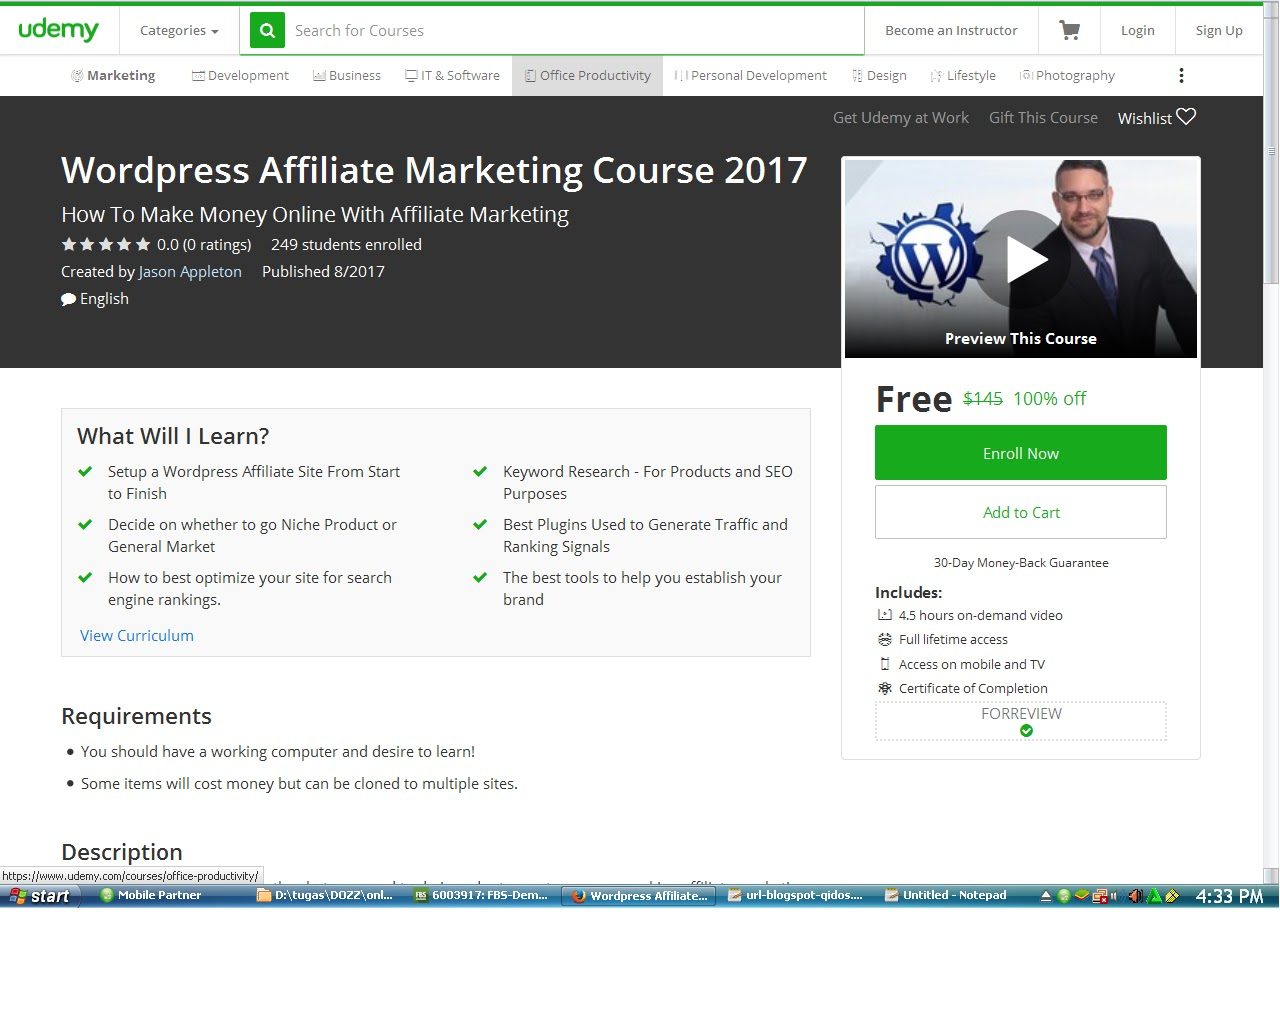 What is Coupon Affiliate Marketing? The standard affiliate marketing setup works like this: A website owner (the affiliate marketer) partners with a brand and agrees to market that brand using their own website and/or sphere of online influence. Typically, the brand gives the affiliate marketer a dedicated promo code or affiliate link so they.